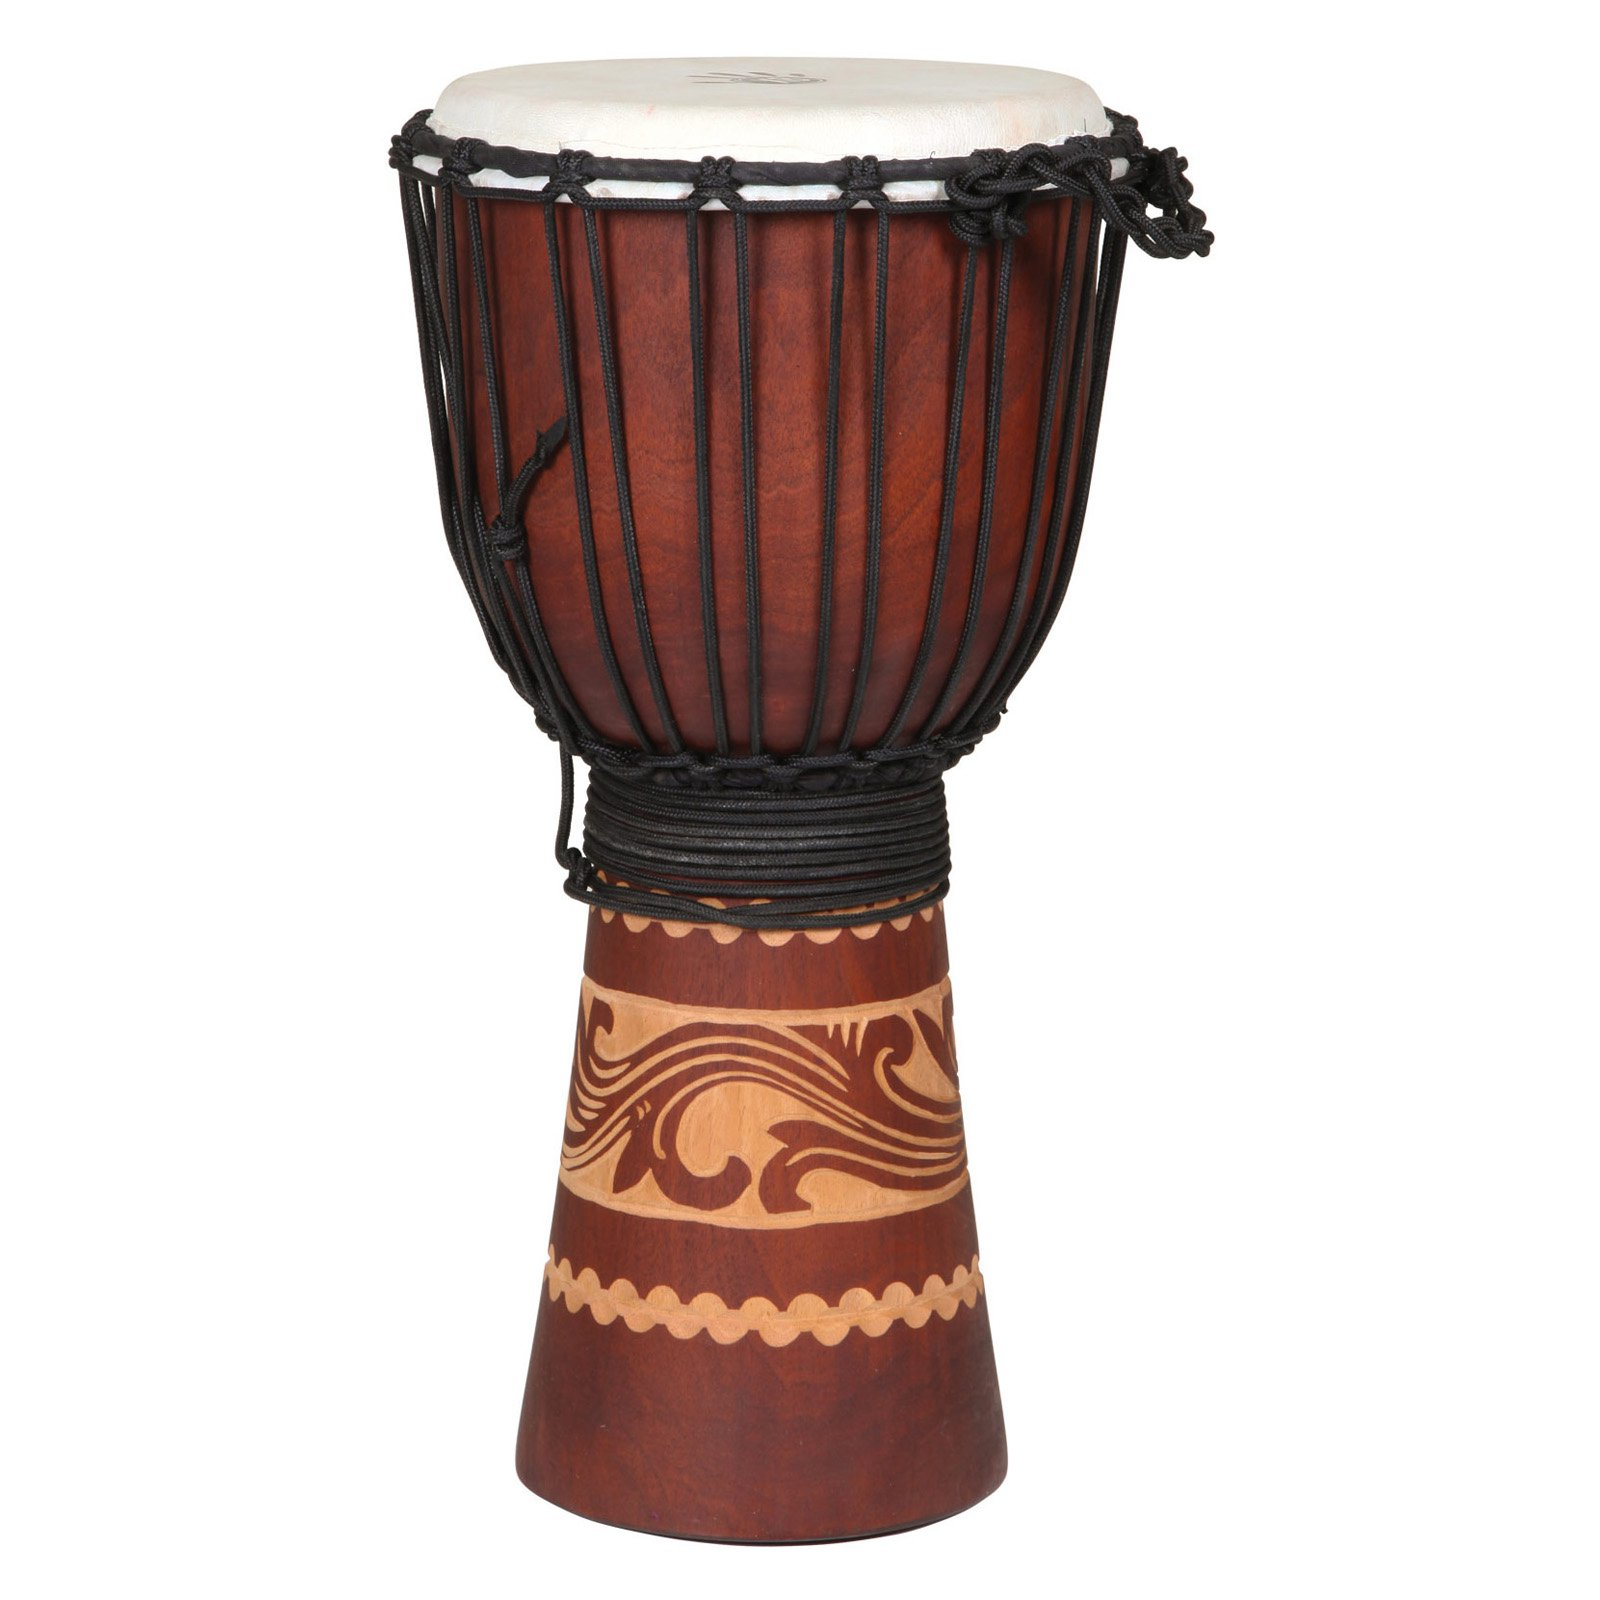 X8 Drums Kalimantan Djembe Drum